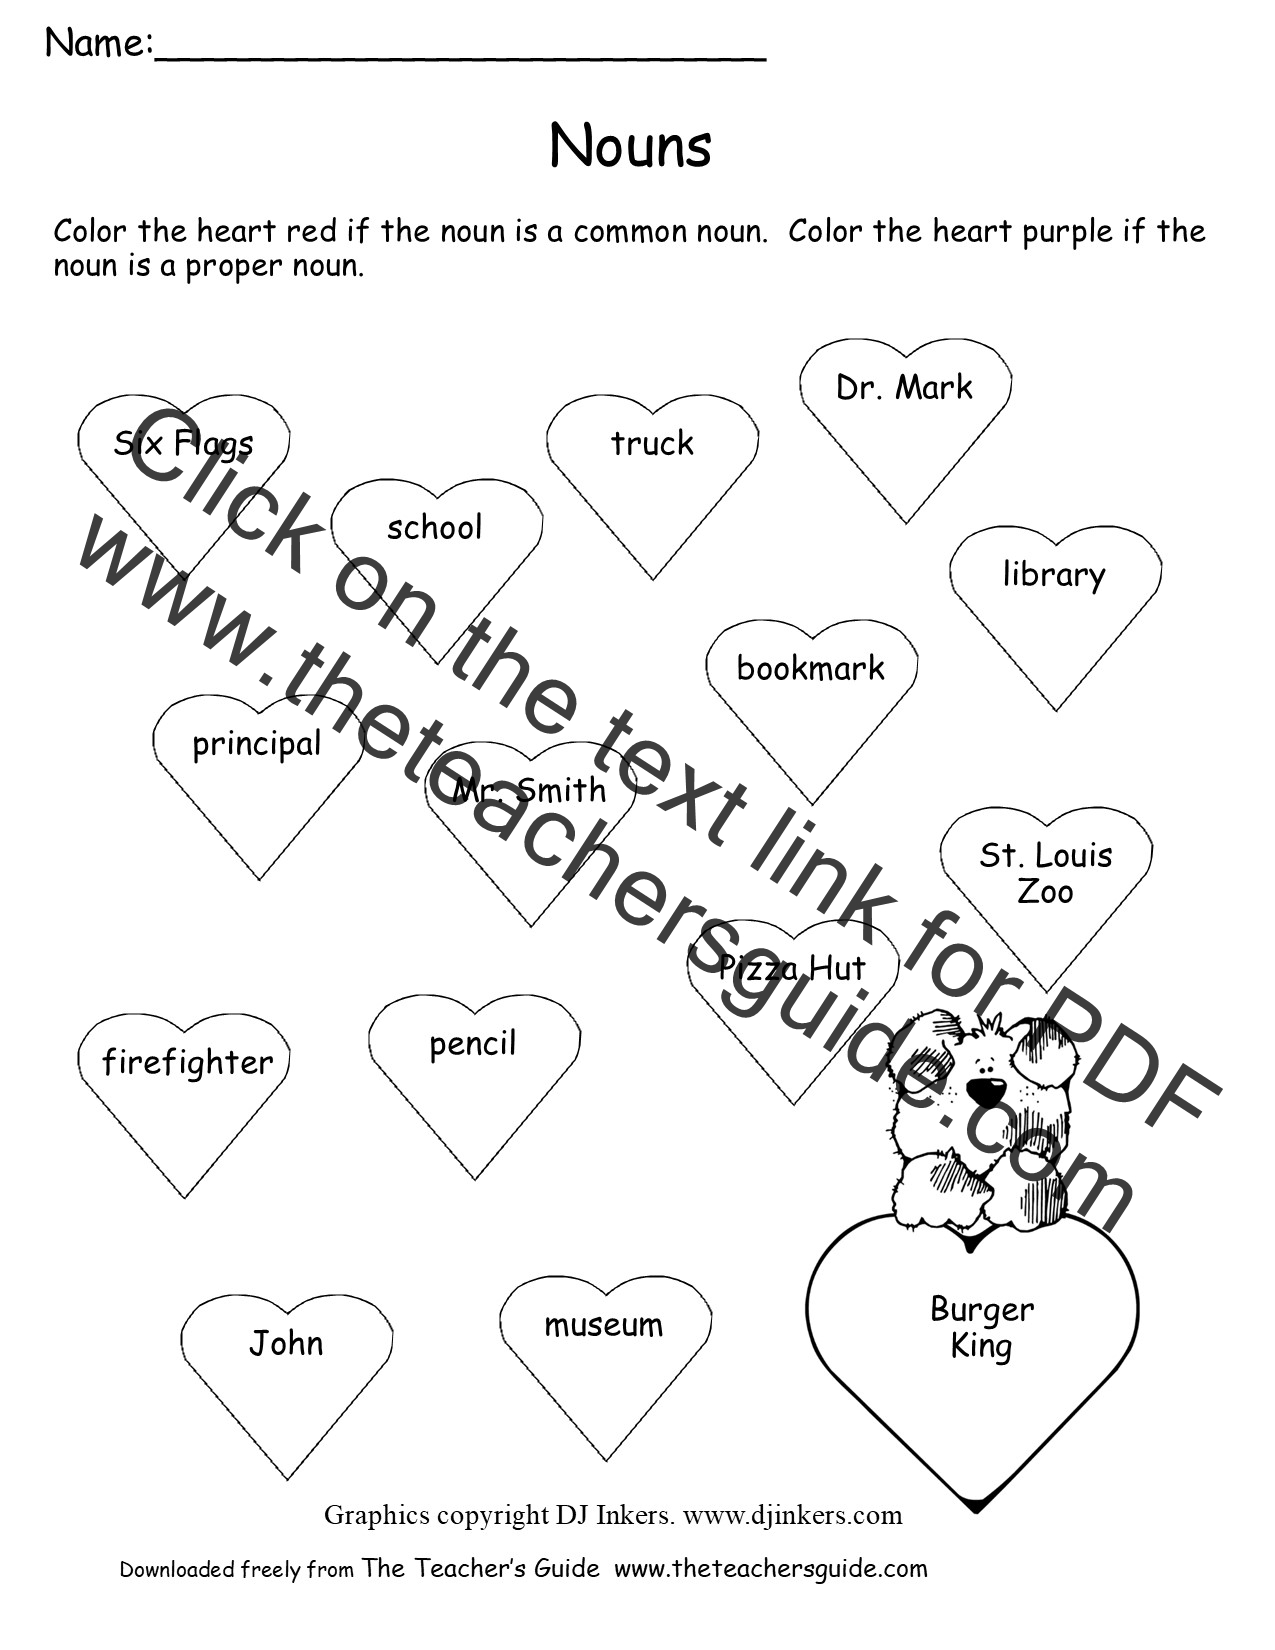 Valentines Day Printouts from The Teachers Guide – Common Nouns and Proper Nouns Worksheet